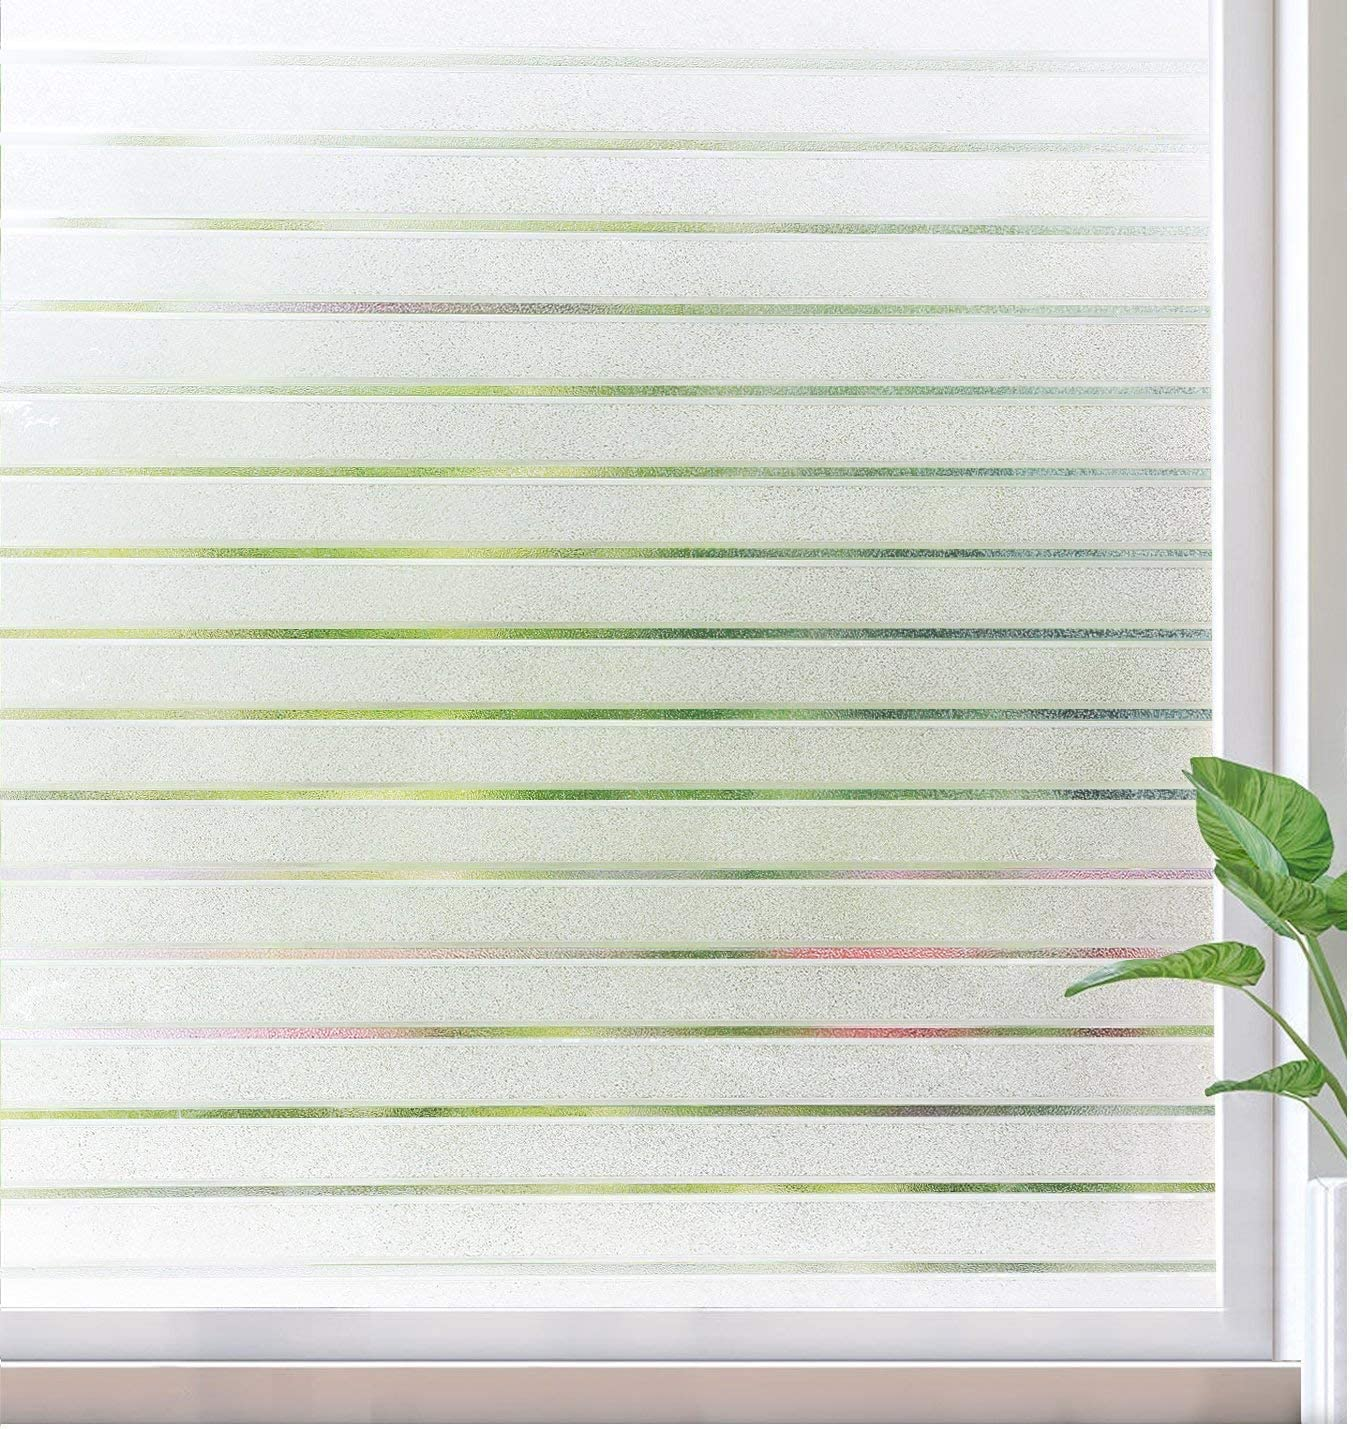 Matte White, 17.5 x 78.7 Privacy Window Film No Glue Frosted Glass Sticker for Home Office Static Anti-UV Window Paper Decorative Window Covering for Bathroom